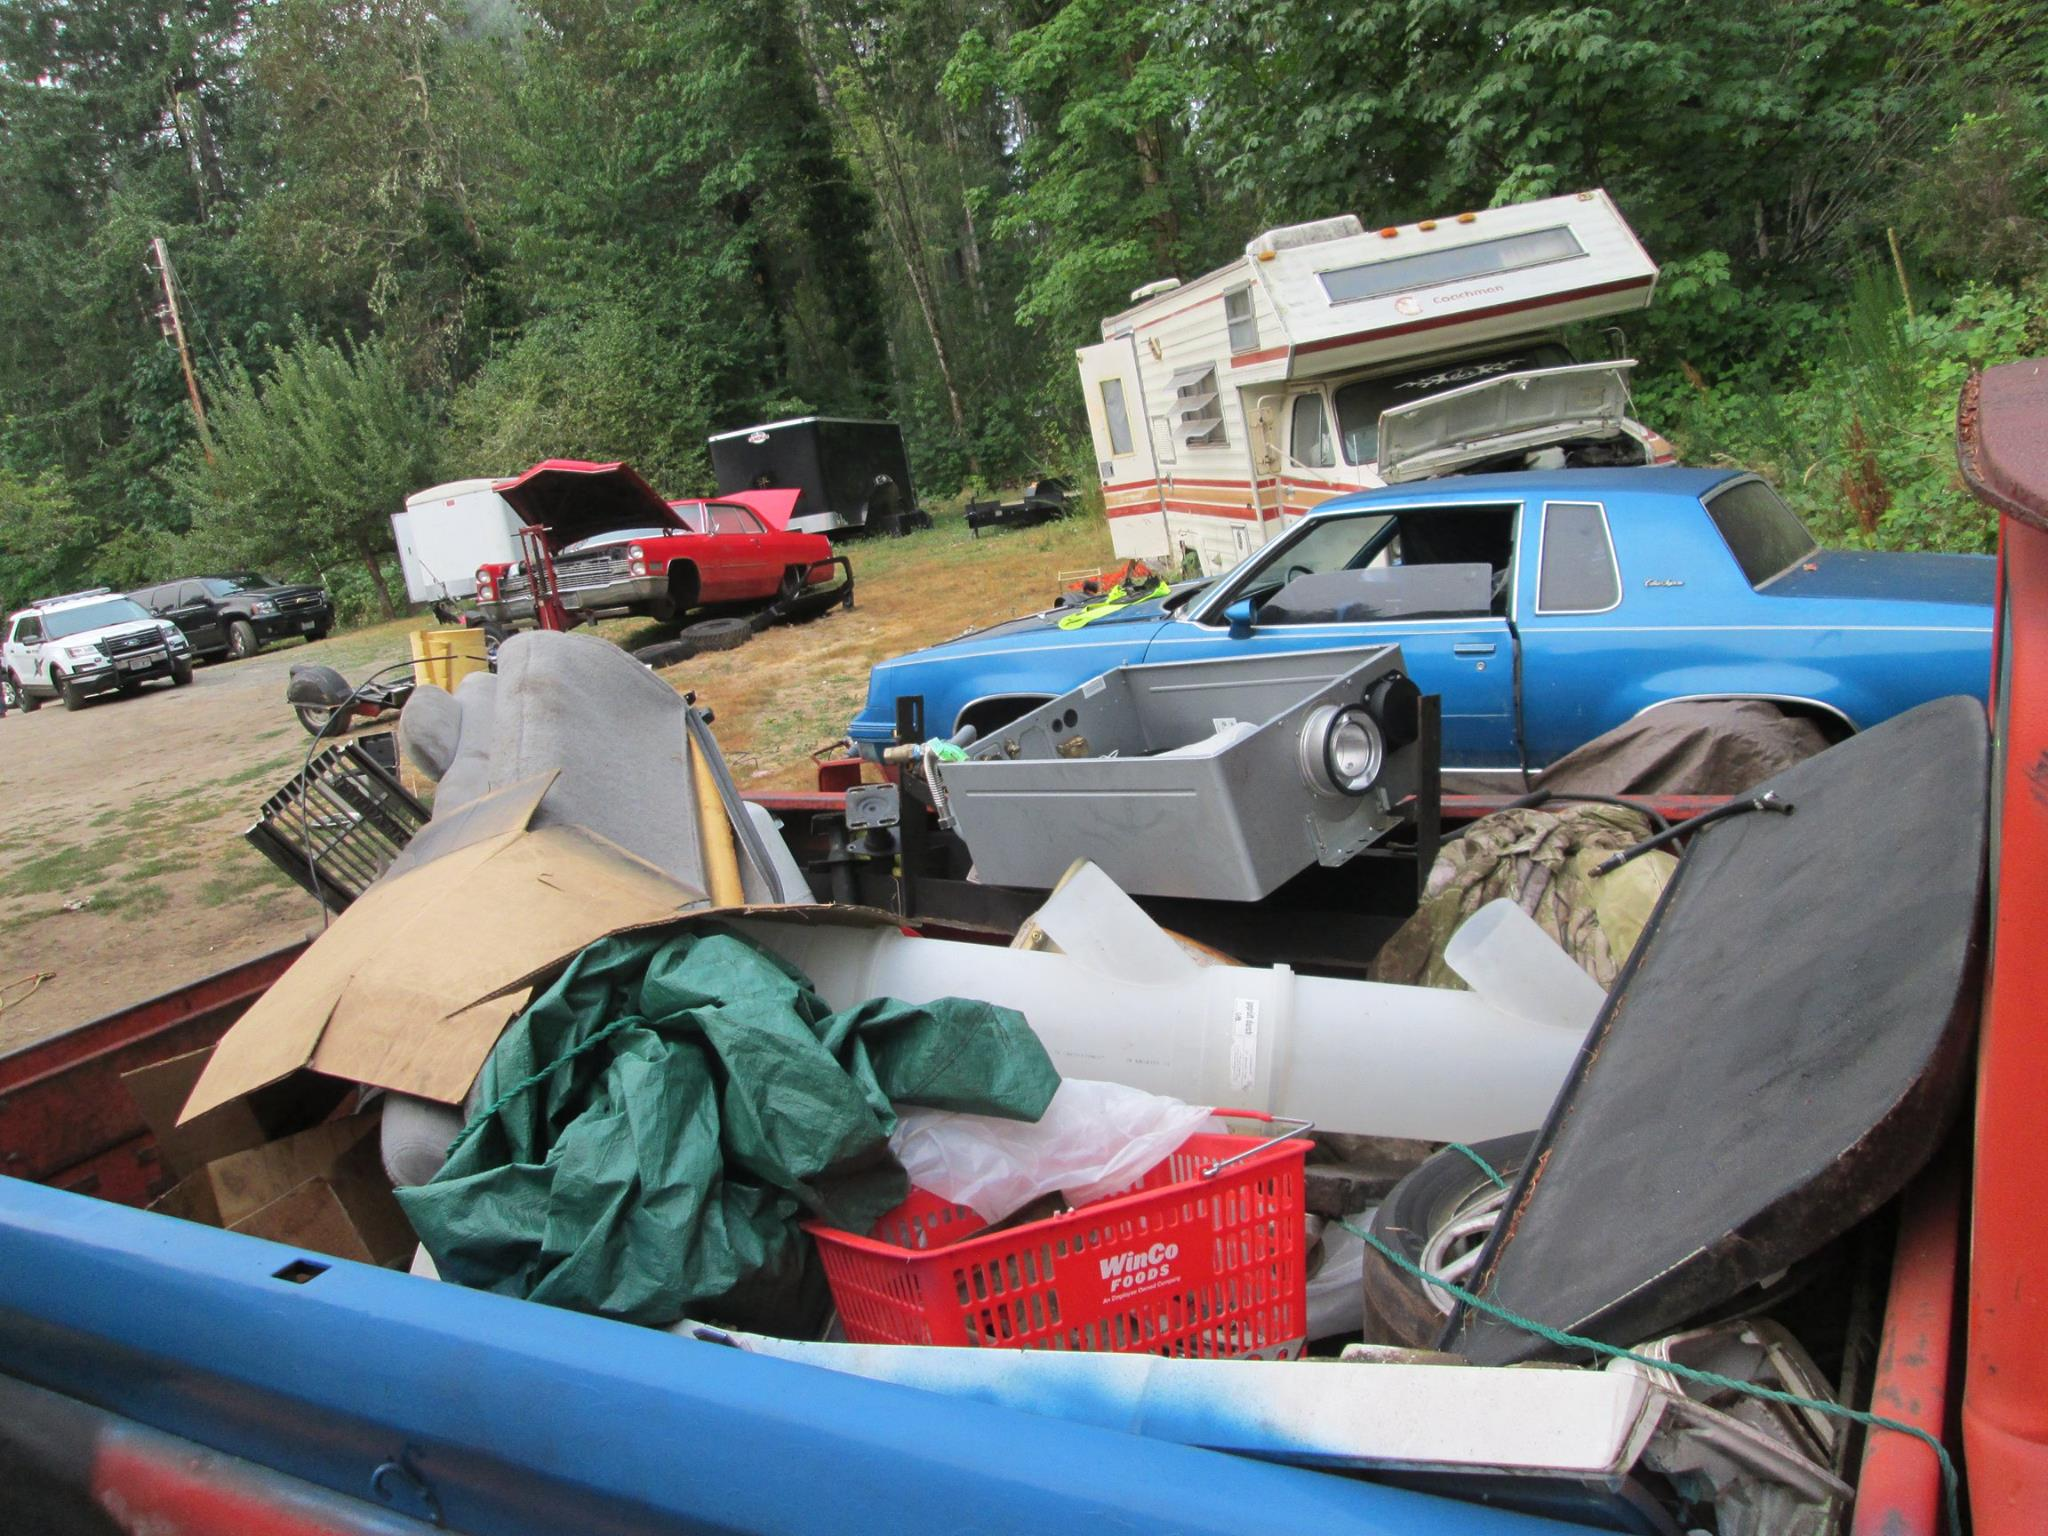 Detectives find stolen cars, trailers and motorcycles at GigHarbor ...